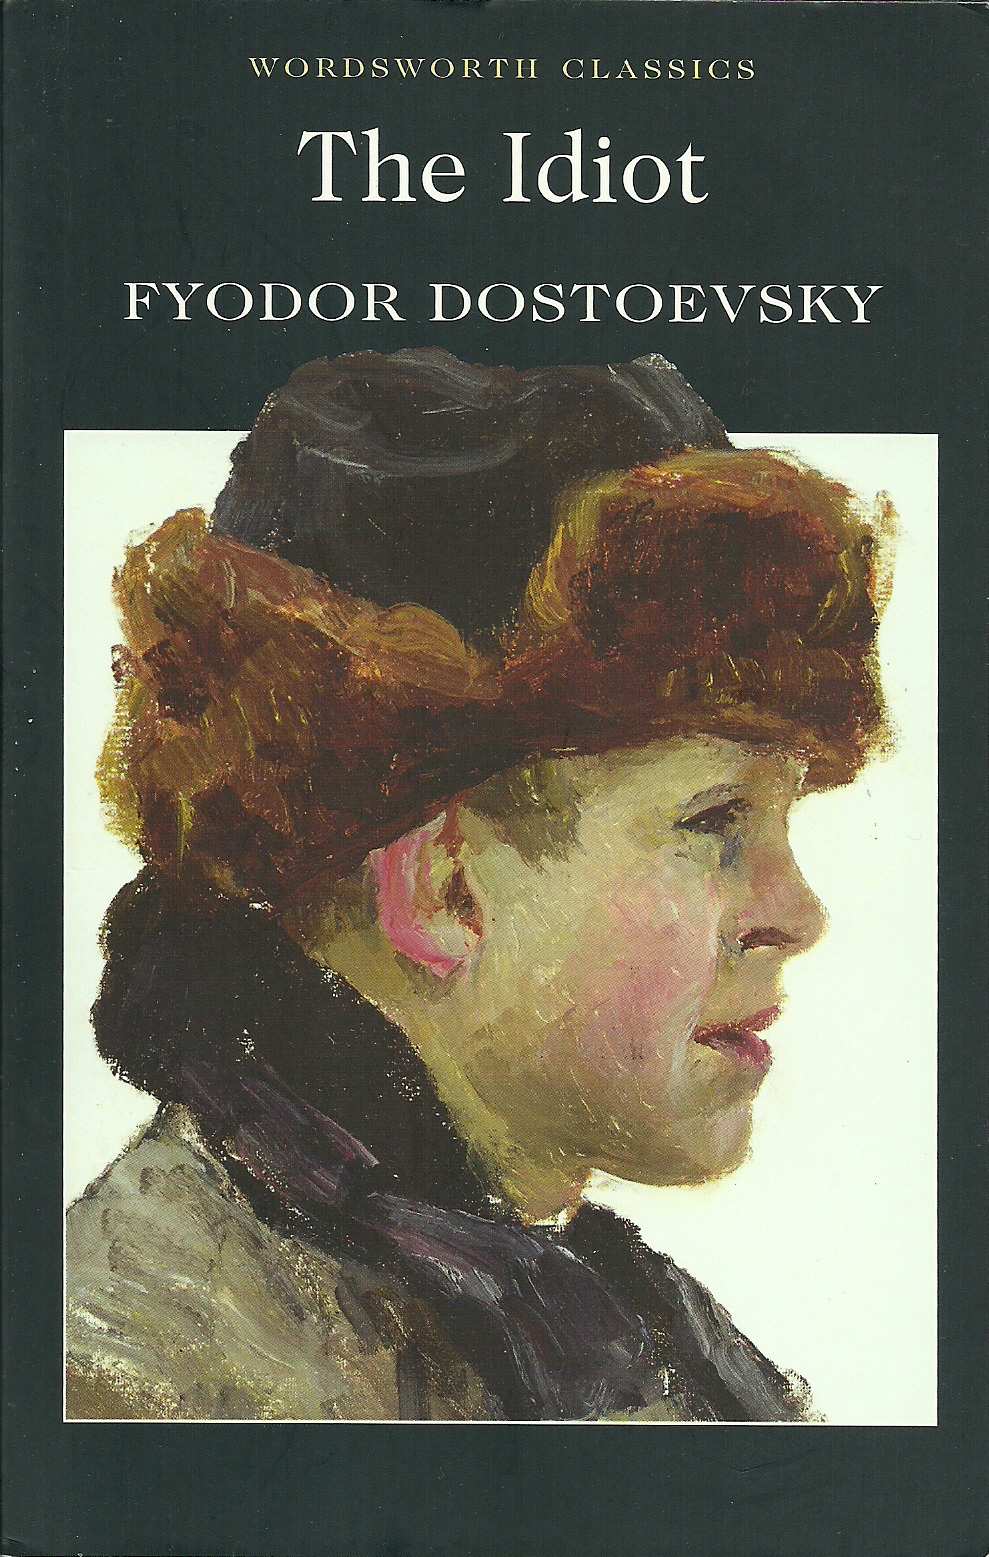 The character of Dostoevskys novel The Idiot - Prince Myshkin